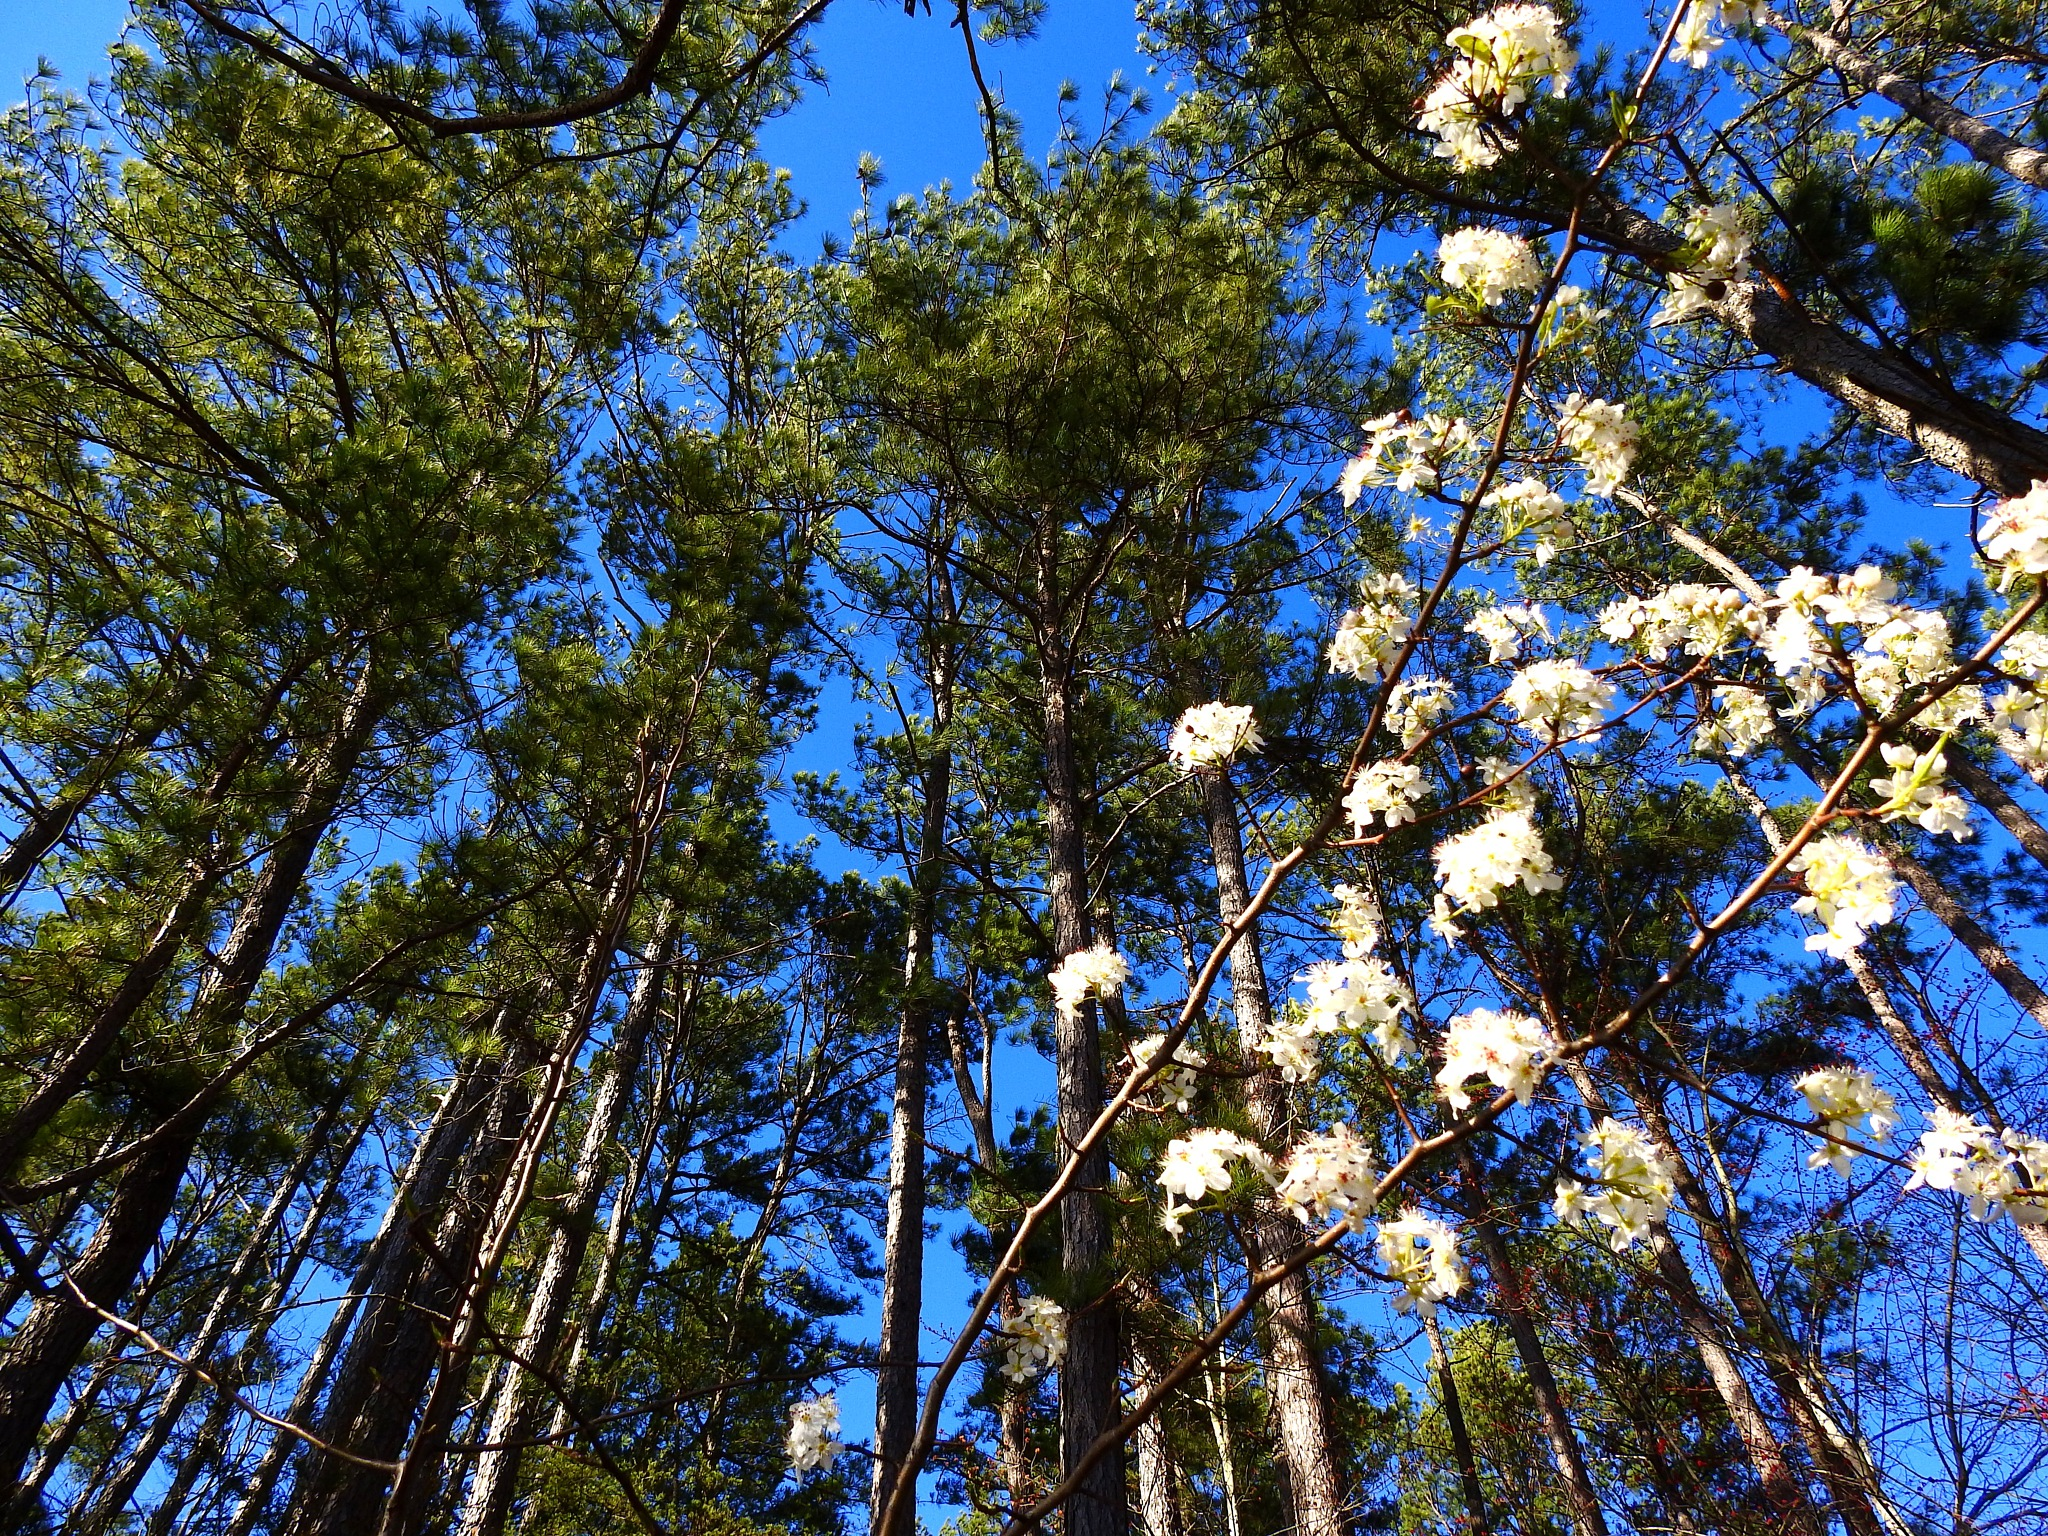 Flowering Tree in the Pines by Patty Stockton